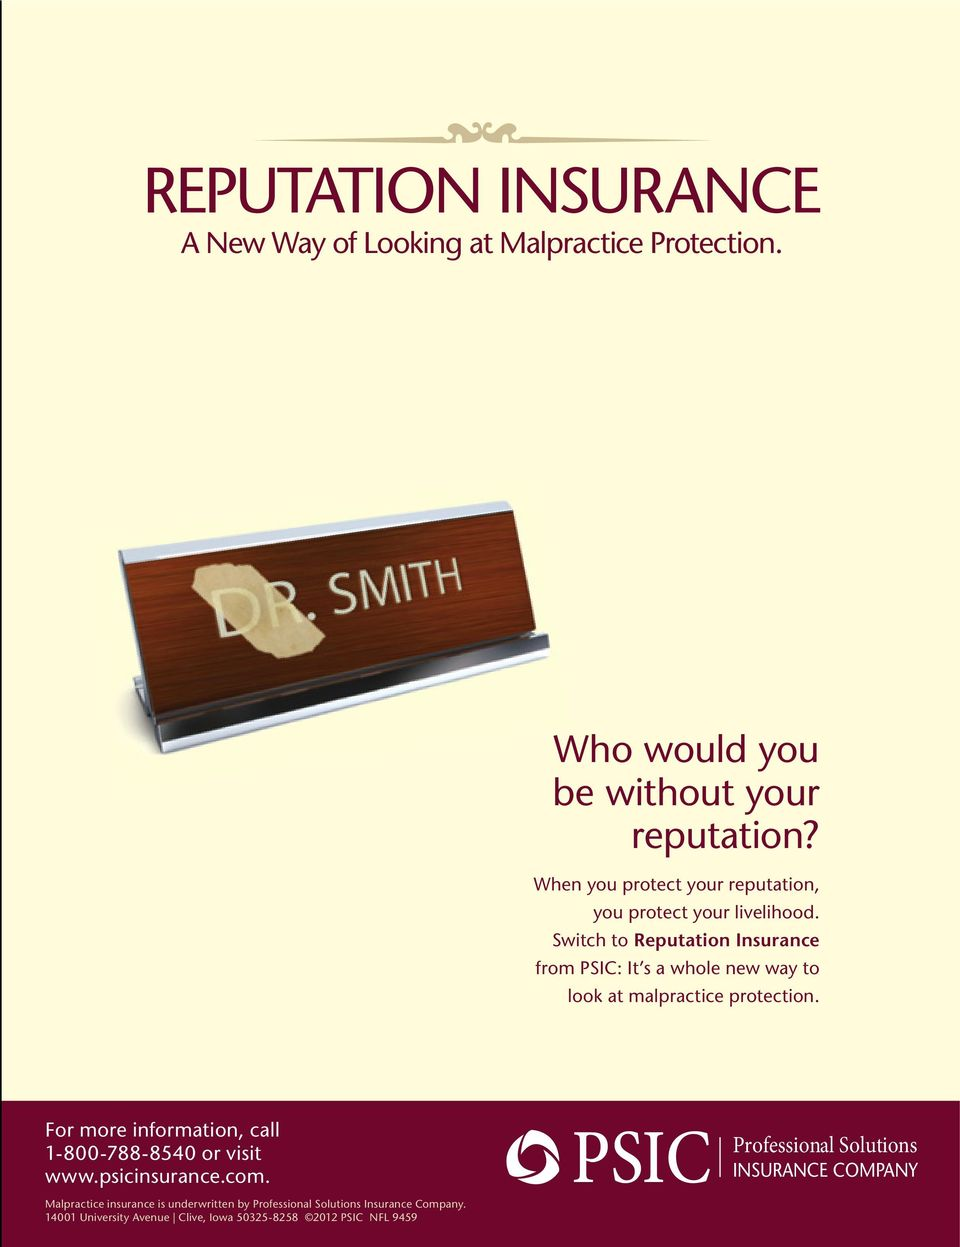 Switch to Reputation Insurance from PSIC: It s a whole new way to look at malpractice protection.